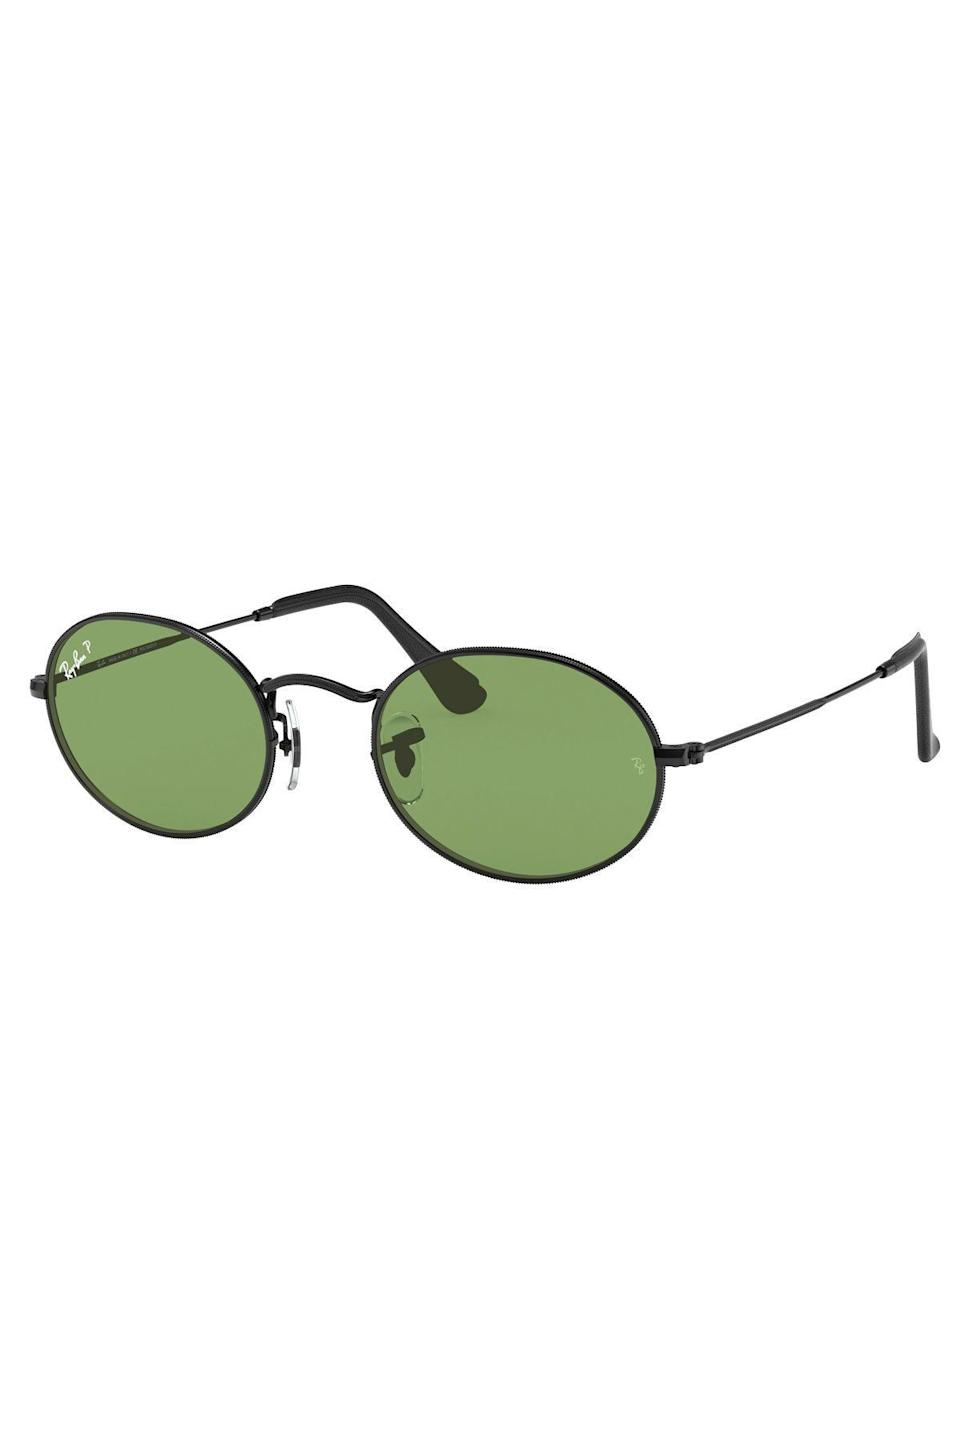 """<p><strong>ray-ban</strong></p><p>ray-ban.com</p><p><strong>$211.00</strong></p><p><a href=""""https://go.redirectingat.com?id=74968X1596630&url=https%3A%2F%2Fwww.ray-ban.com%2Fusa%2Fsunglasses%2FRB3547%2520UNISEX%2520oval%2520online%2520exclusive-black%2F8056597097611&sref=https%3A%2F%2Fwww.townandcountrymag.com%2Fsociety%2Ftradition%2Fg37681411%2Fprincess-diana-sweatshirt-biker-shorts-outfit-inspiration%2F"""" rel=""""nofollow noopener"""" target=""""_blank"""" data-ylk=""""slk:Shop Now"""" class=""""link rapid-noclick-resp"""">Shop Now</a></p><p>Ray-Ban offers a modernized version of Diana's oval glasses with silver frames. We love this green and black iteration. </p>"""